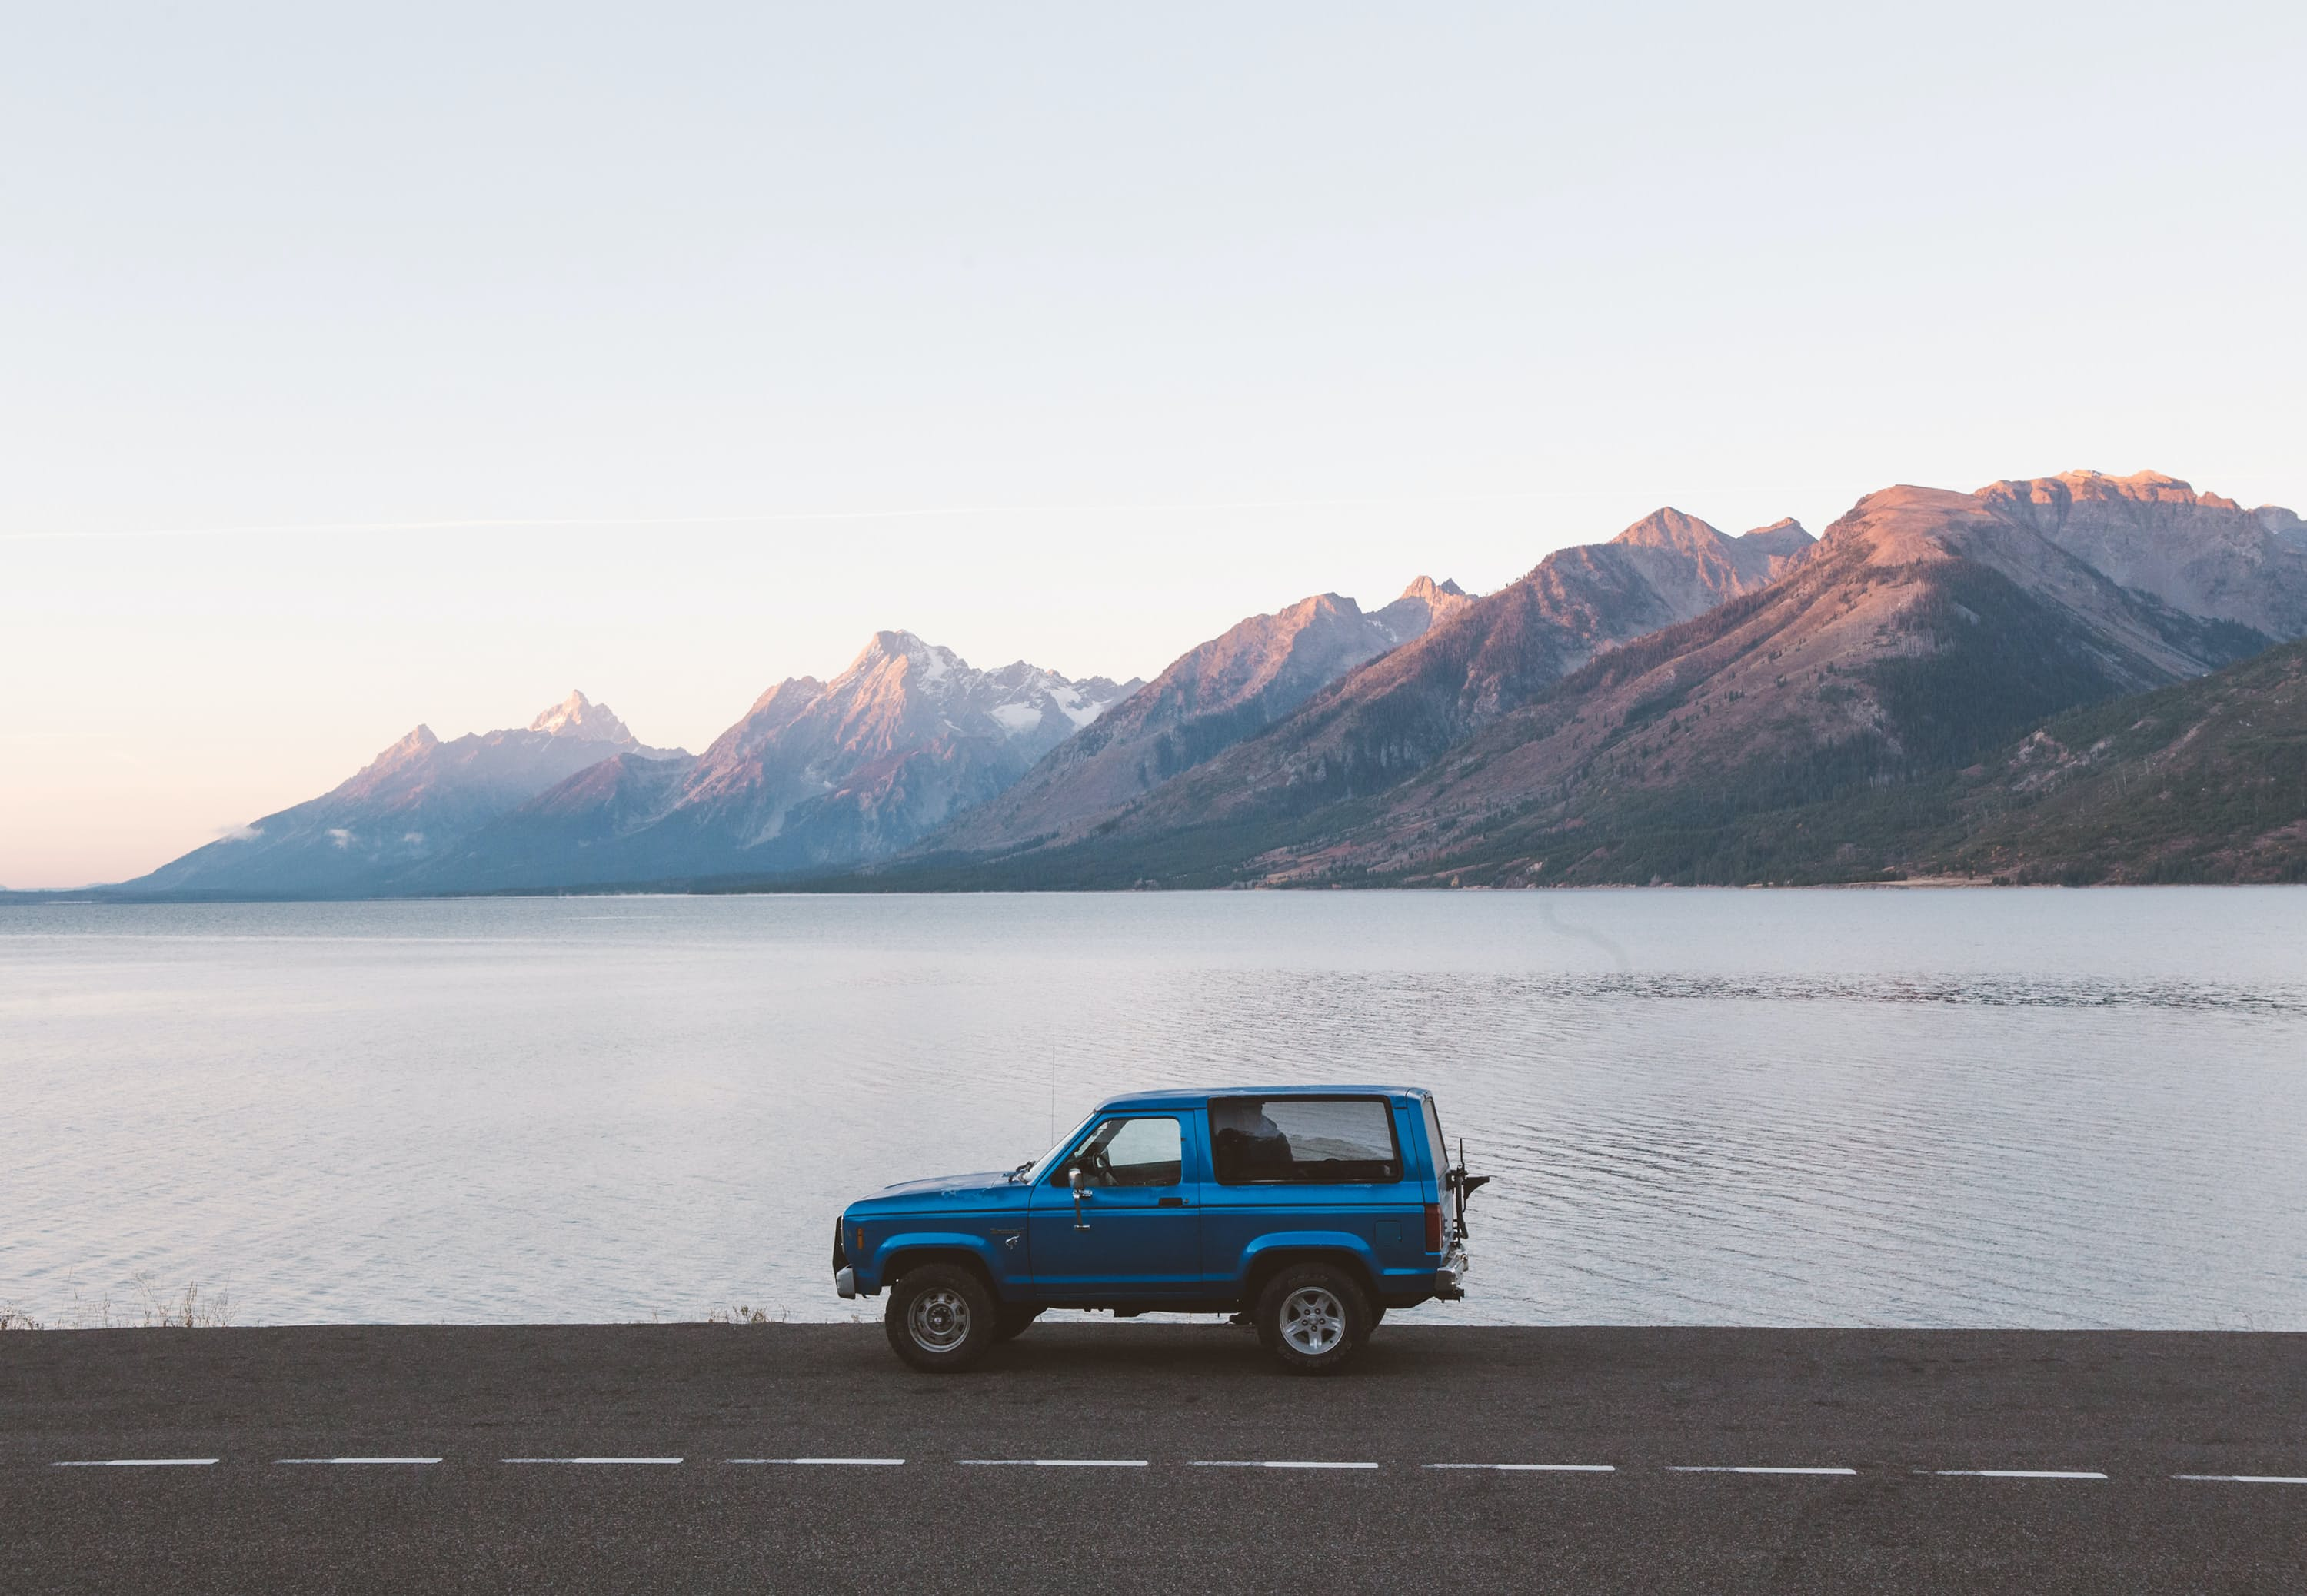 Huckberry insider's guide to yellowstone national park forrest mankins road trip.jpg?ixlib=rails 2.1